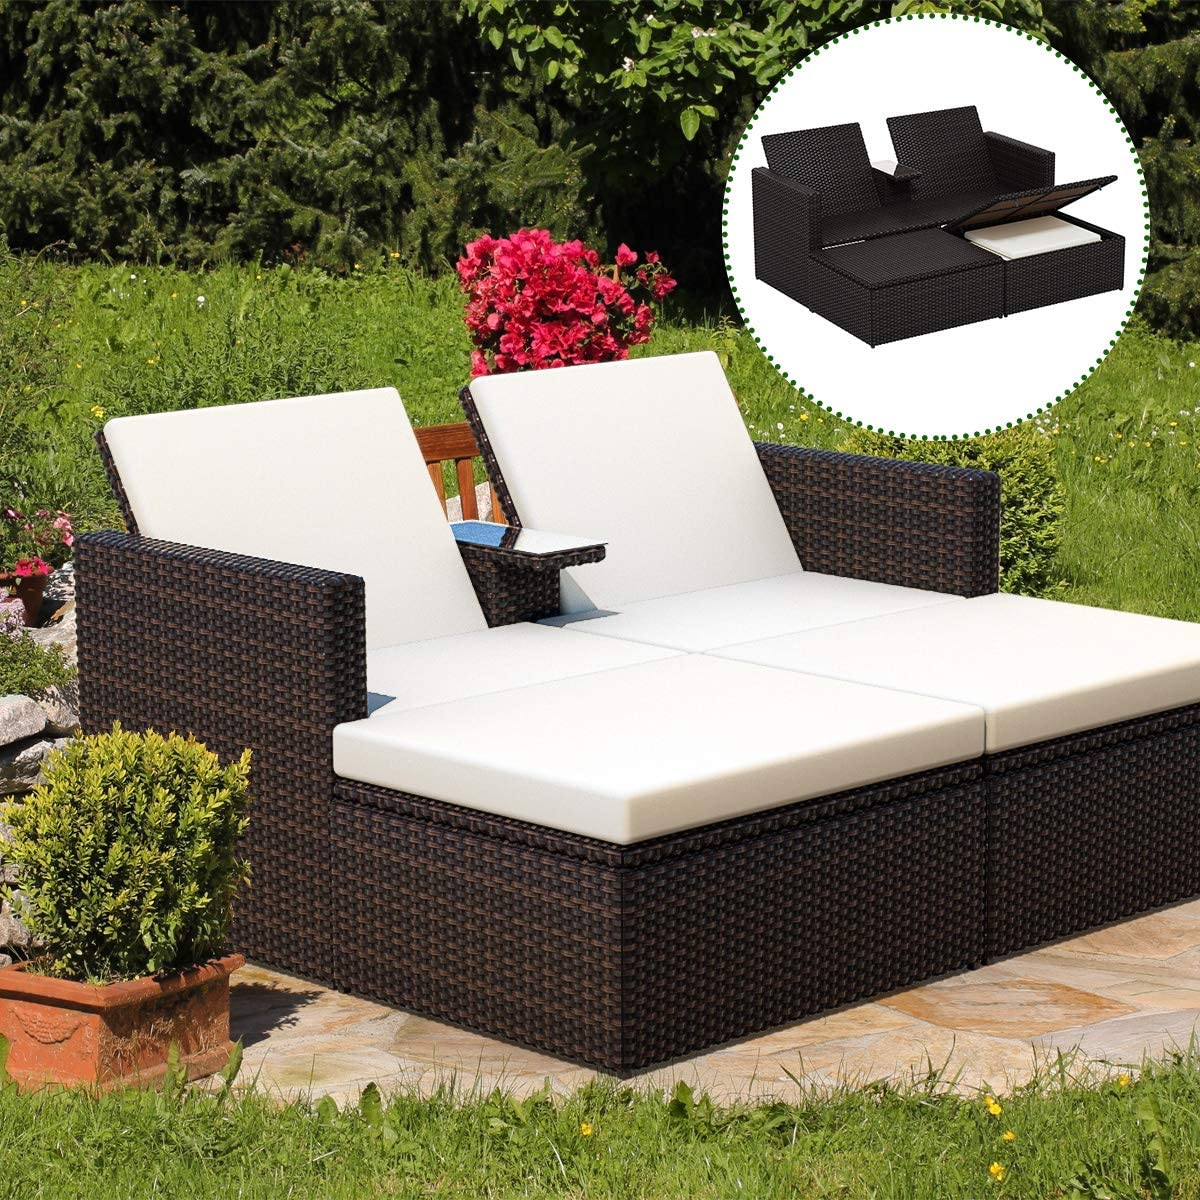 Tangkula 3 Pieces Wicker Chaise, with Storage Ottoman, Outdoor Poolside Garden Adjustable Sun Lounge Bed with Table and Cushions, Patio Furniture Set